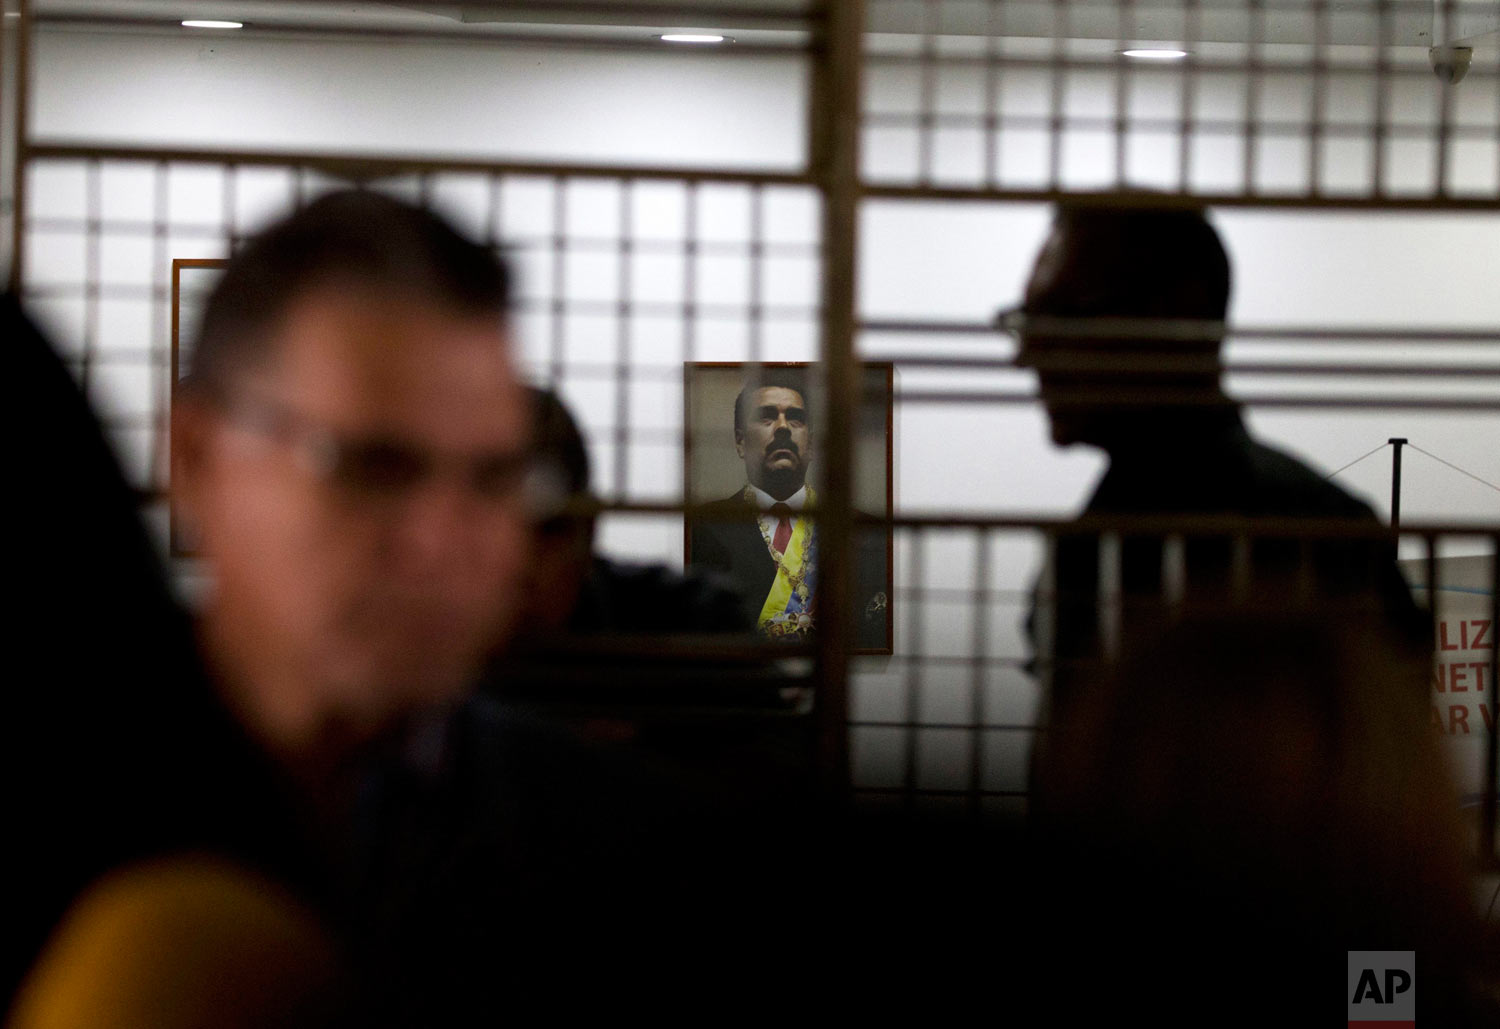 In this Oct. 5, 2018 photo, a photograph of Venezuela's President Nicolas Maduro hangs above the main desk at the Labor Ministry, as protesters demand better wages outside the headquarters in Caracas, Venezuela. Inflation is expected to have topped 1 million percent in 2018. (AP Photo/Fernando Llano)